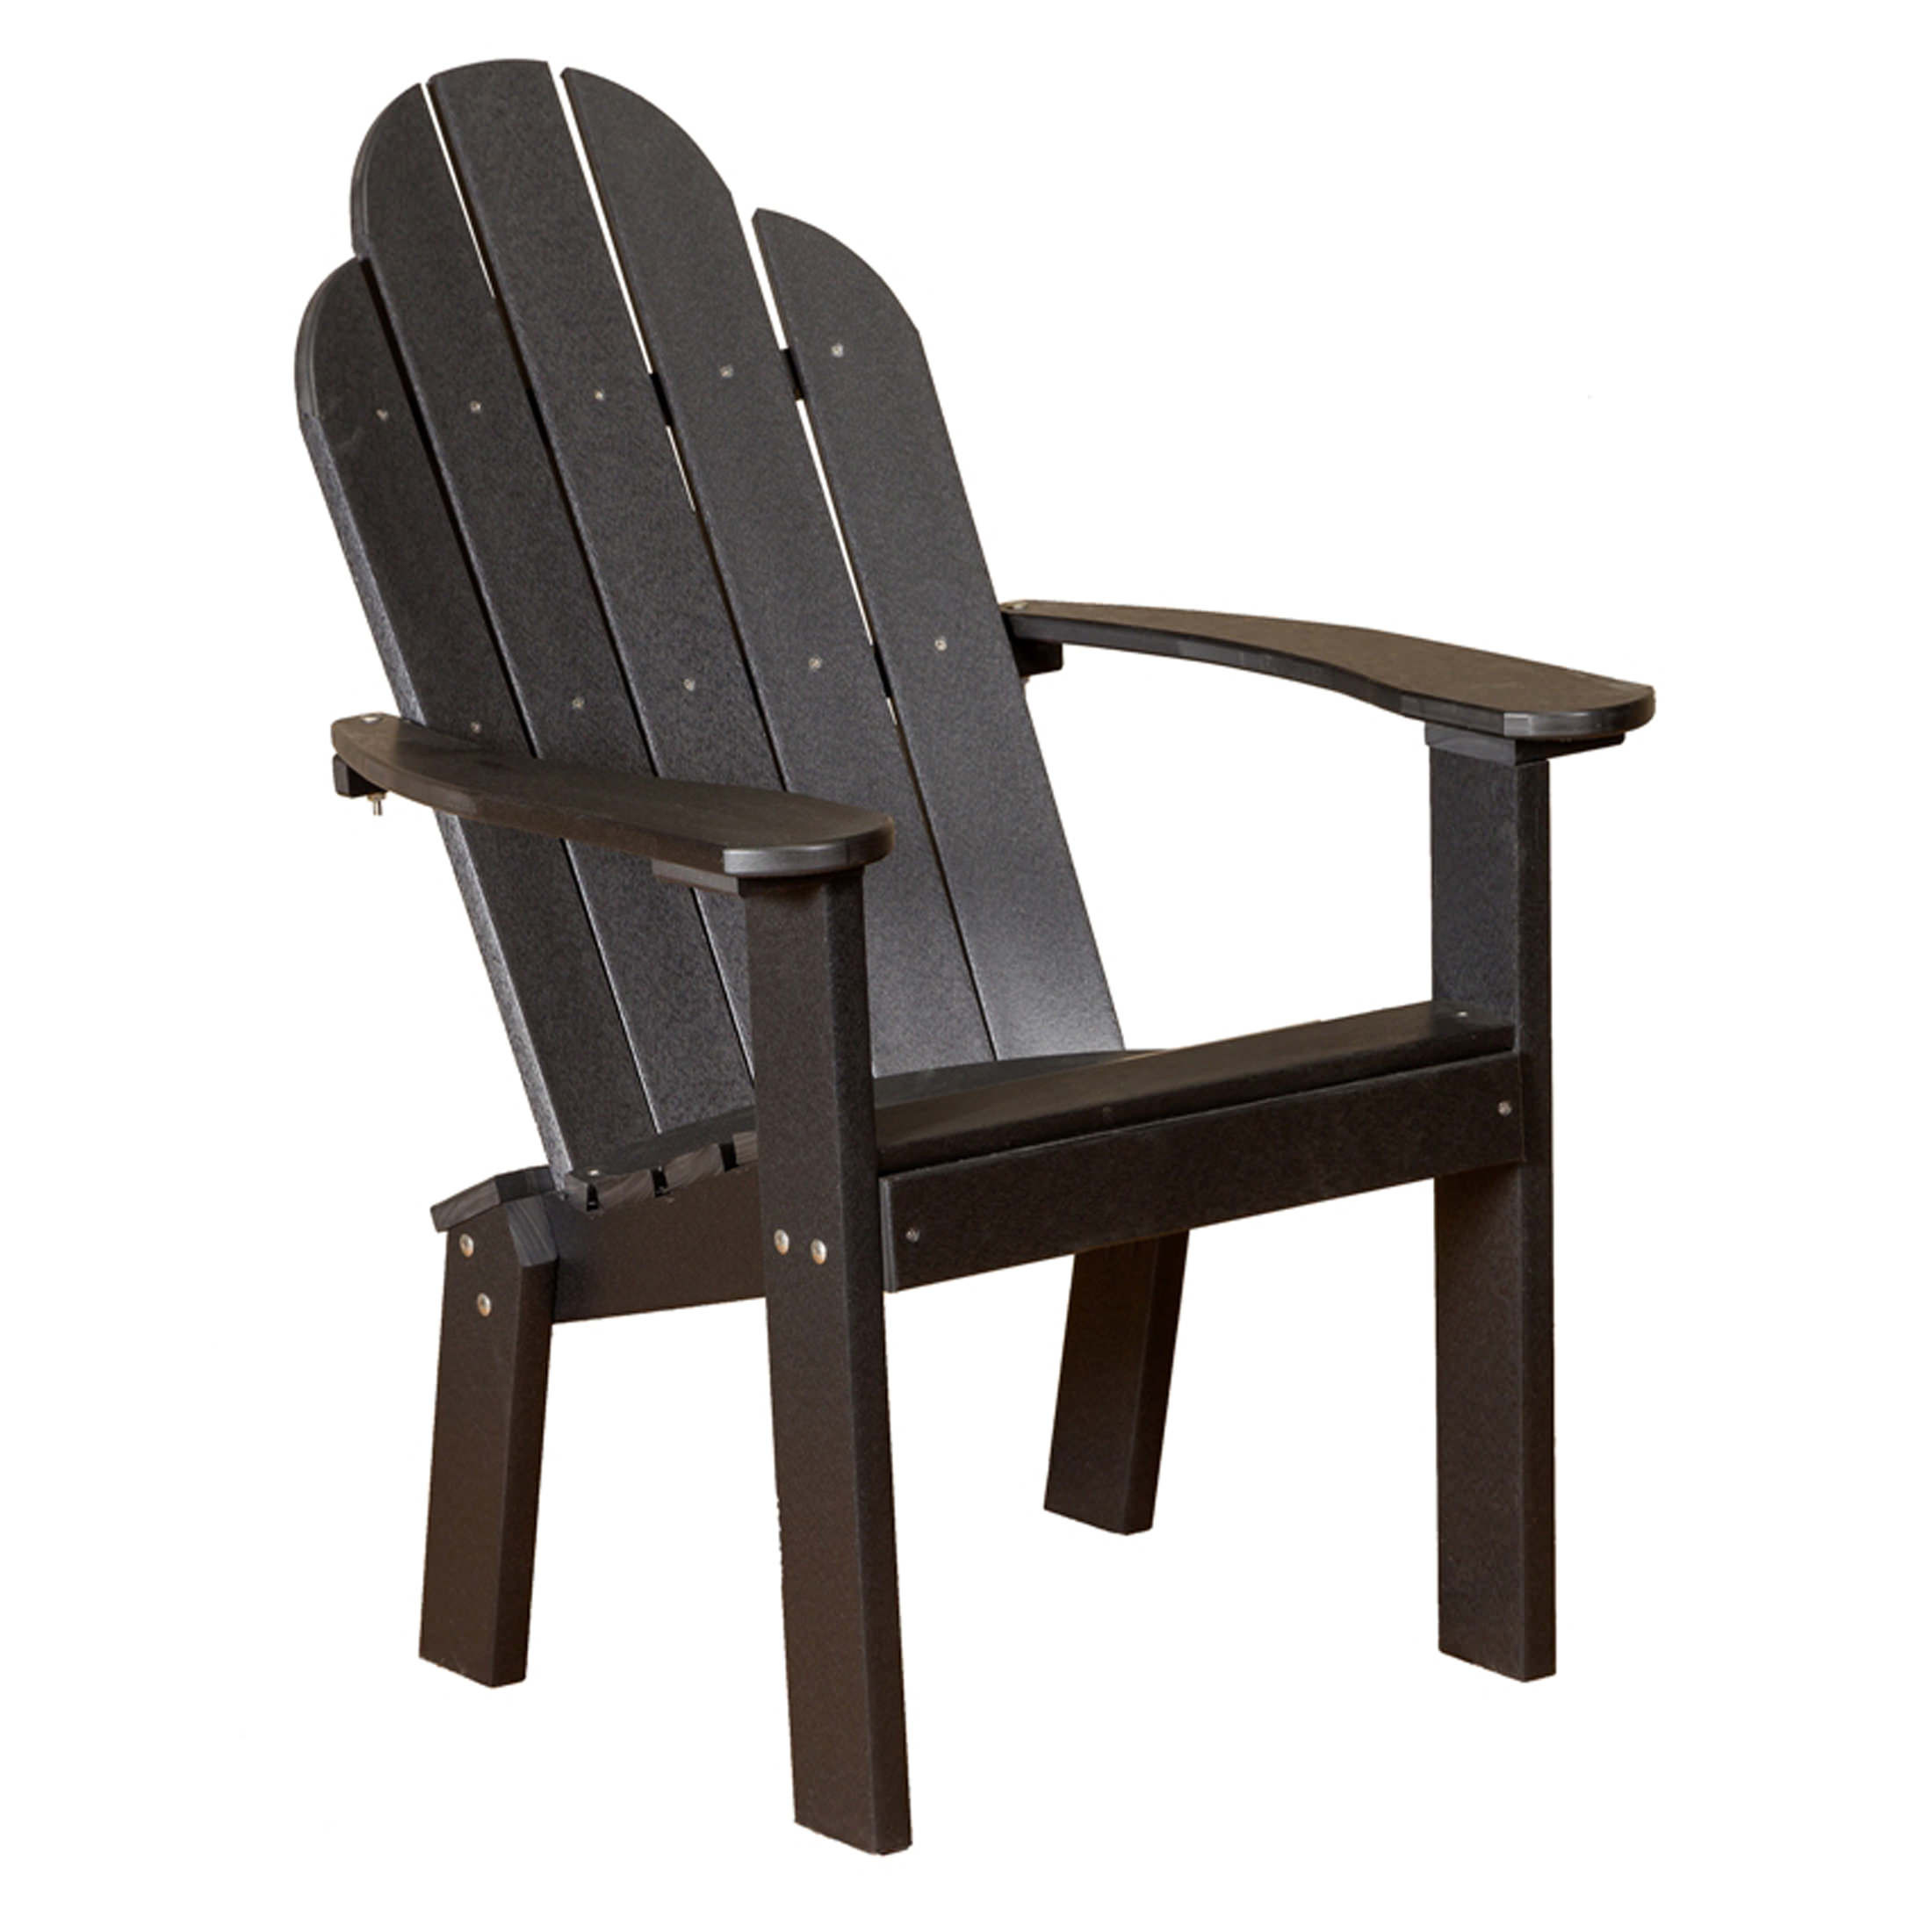 Perfect Little Cottage Classic Deck Chair